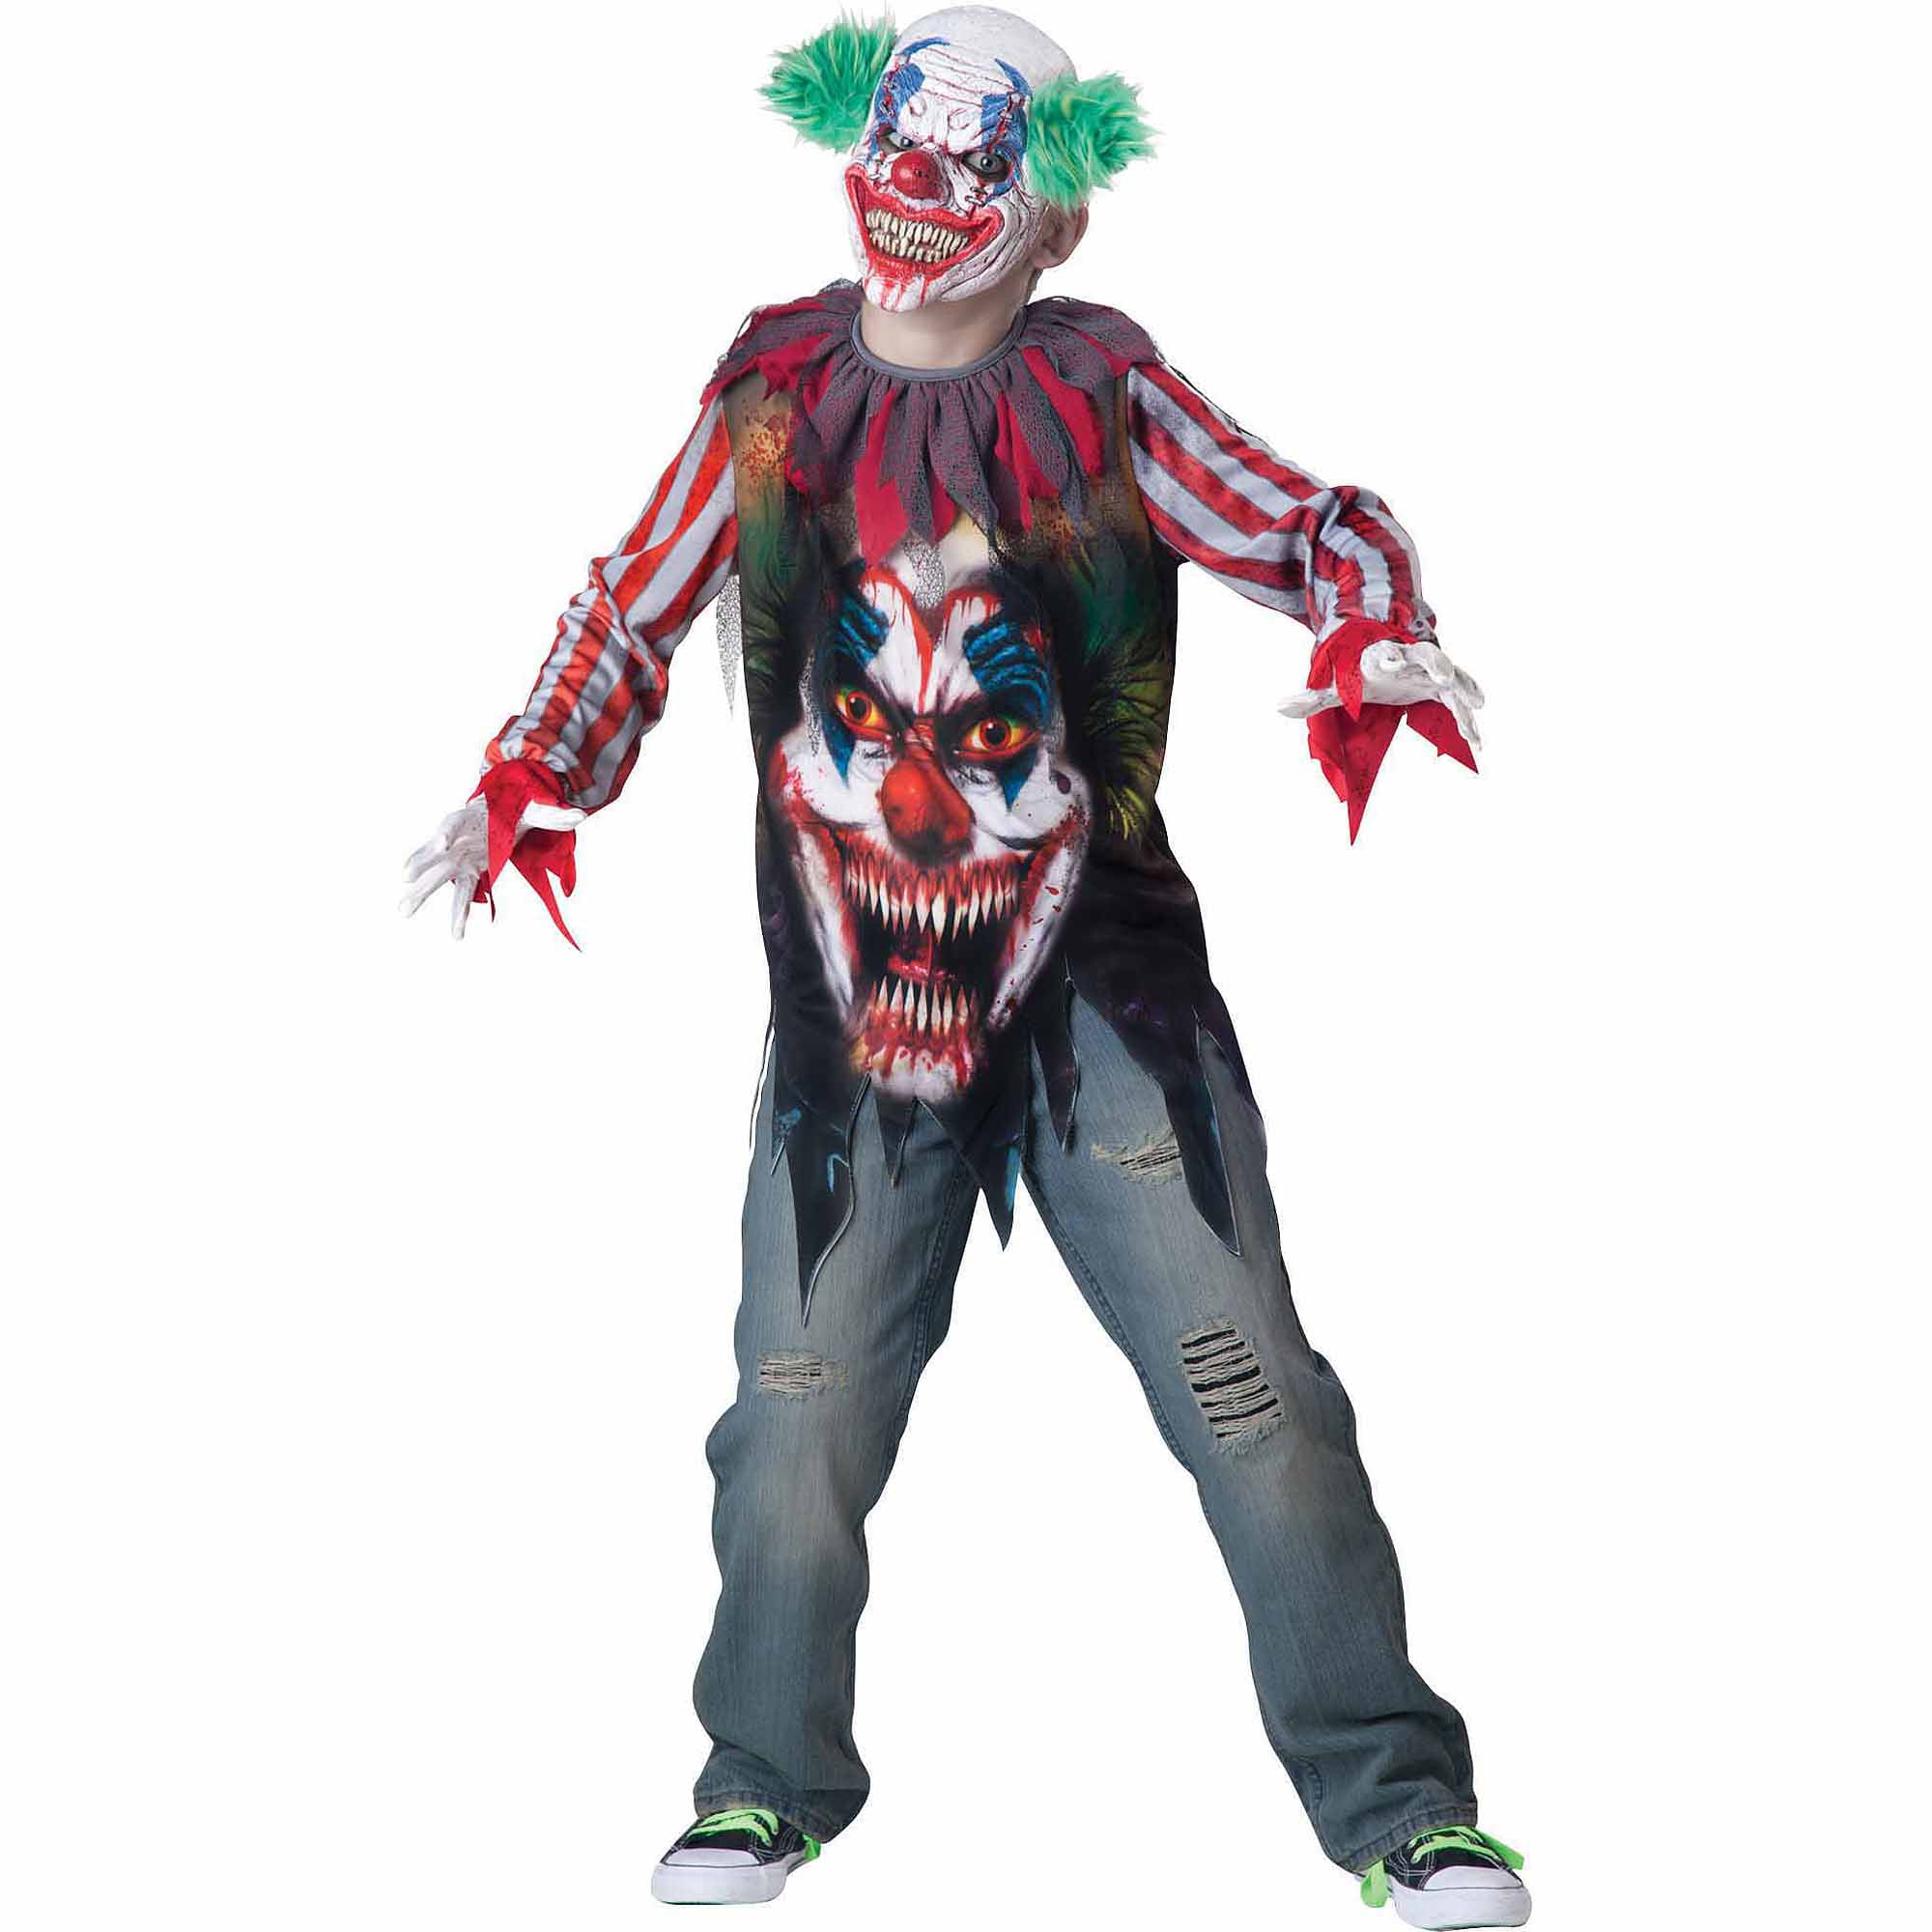 hazmat hazard child halloween costume walmartcom - Joker Halloween Costume Kids